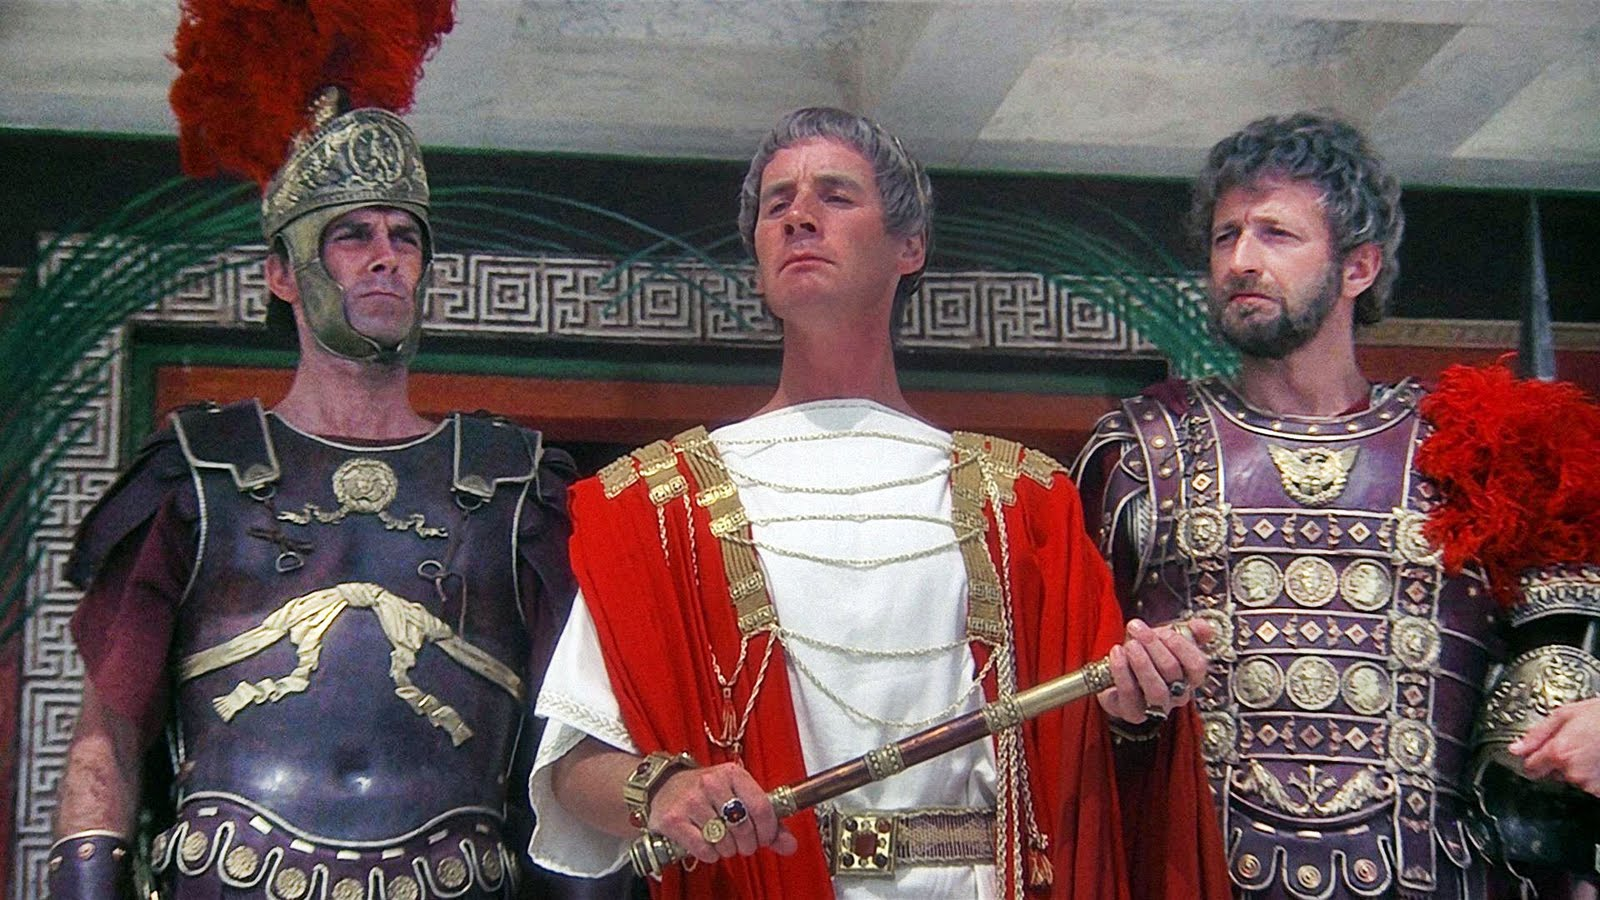 Michael Palin as Pontius Pilate (c) flanked by centurions John Cleese (l) and Graham Chapman (r) in Monty Python's The Life of Brian (1979)